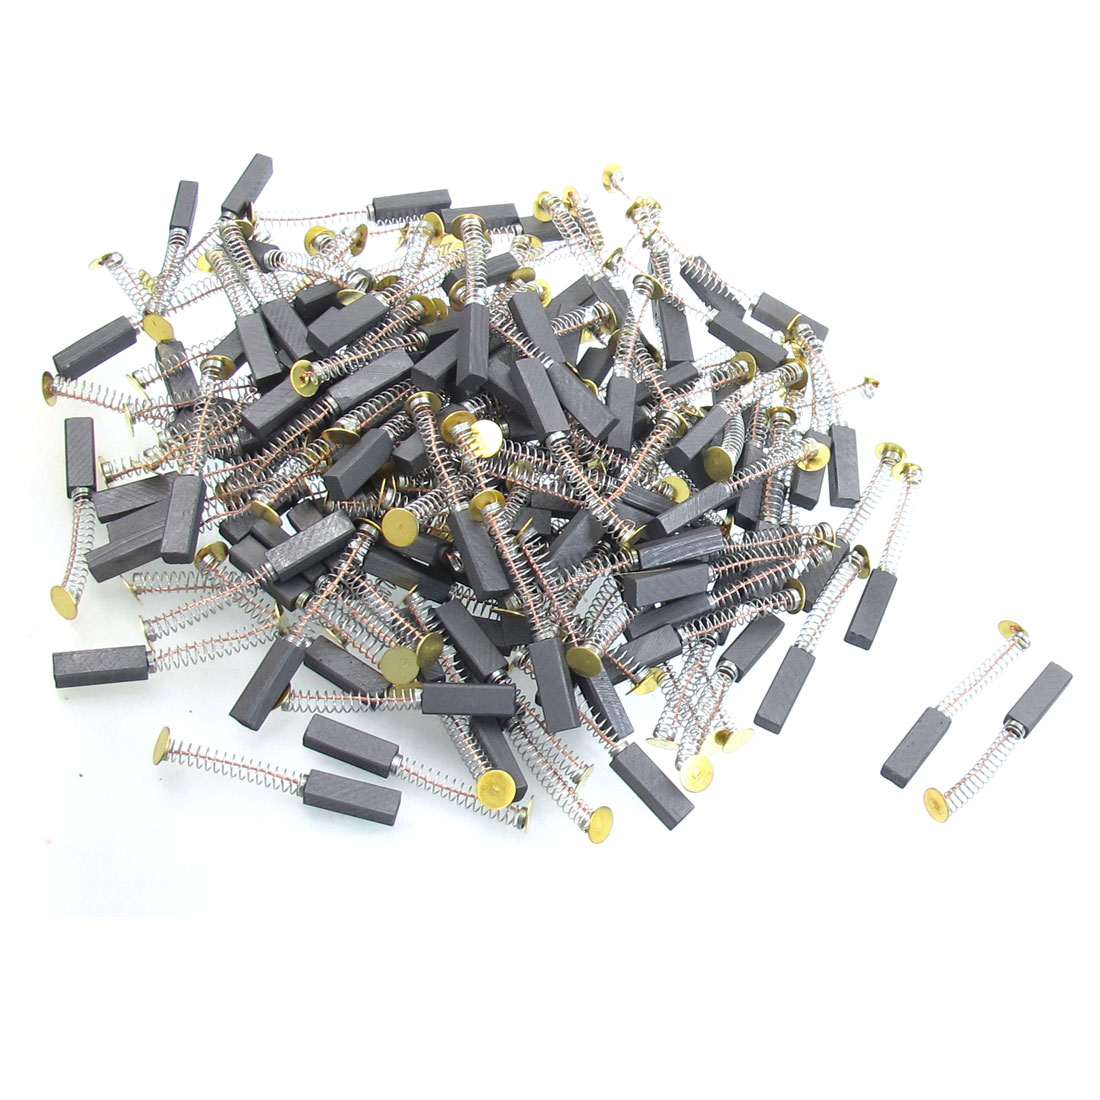 "200 Pcs 15/64"" x 5/16"" x 63/64"" Motor Carbon Brushes for Electric Drill"